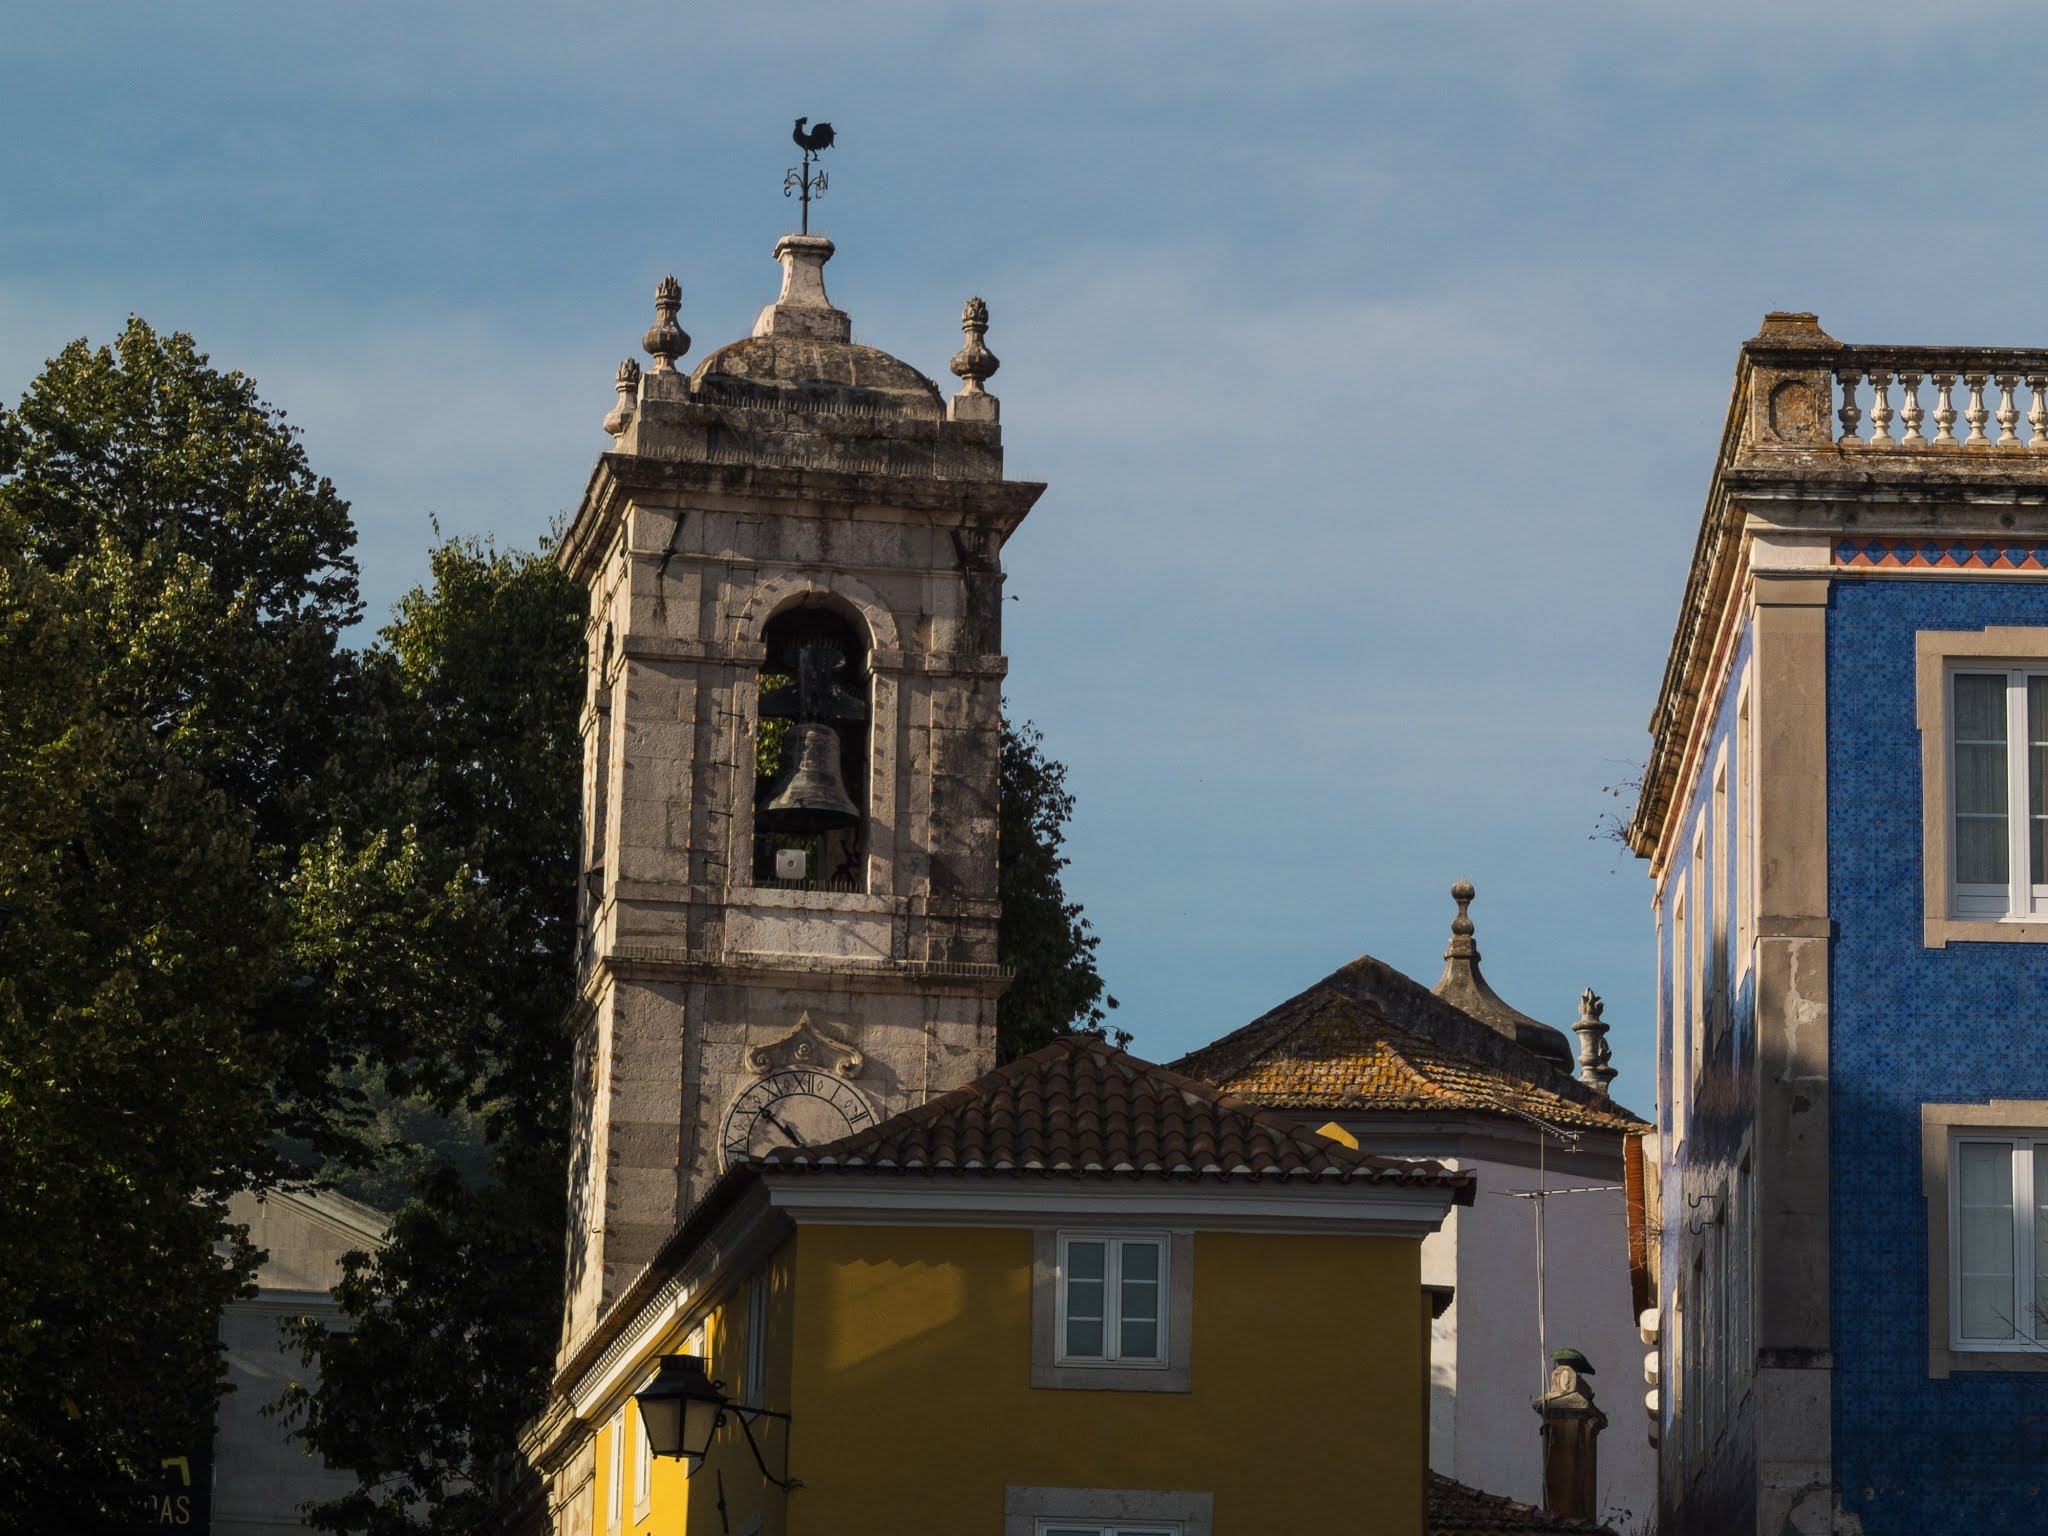 Colourful buildings in front of the Sao Martinho Church bell tower in Sintra, Portugal.